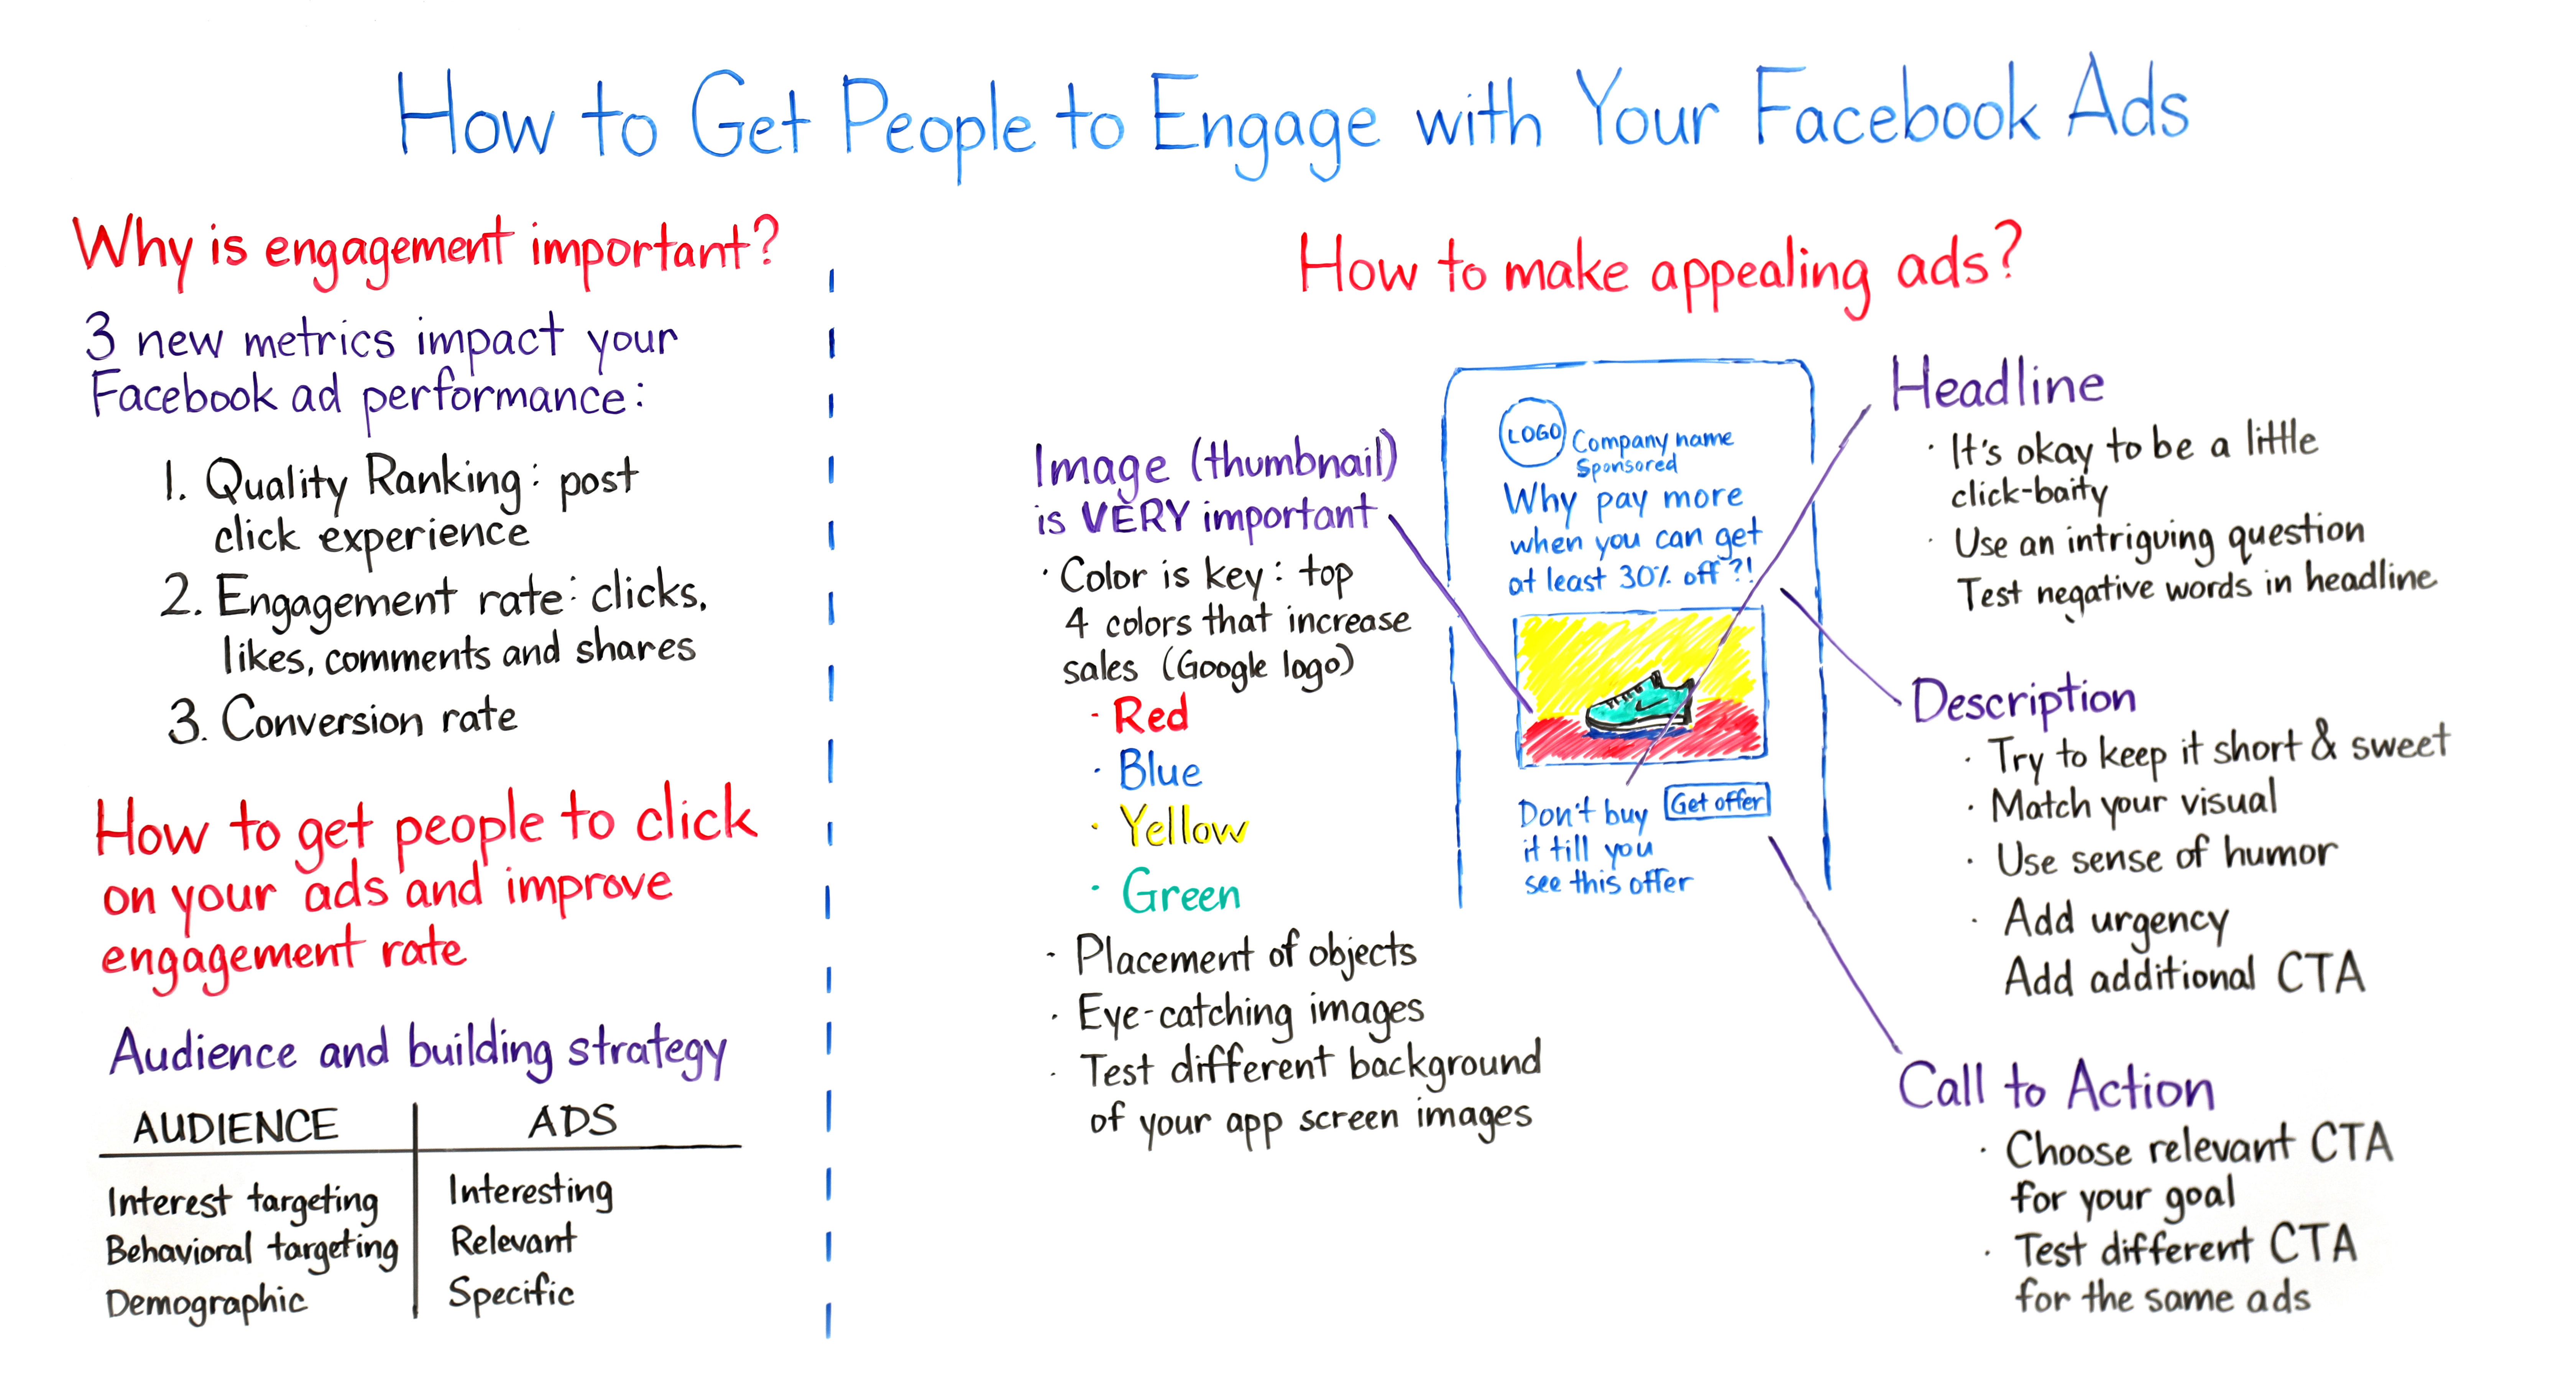 How to get people to engage with your facebook ads